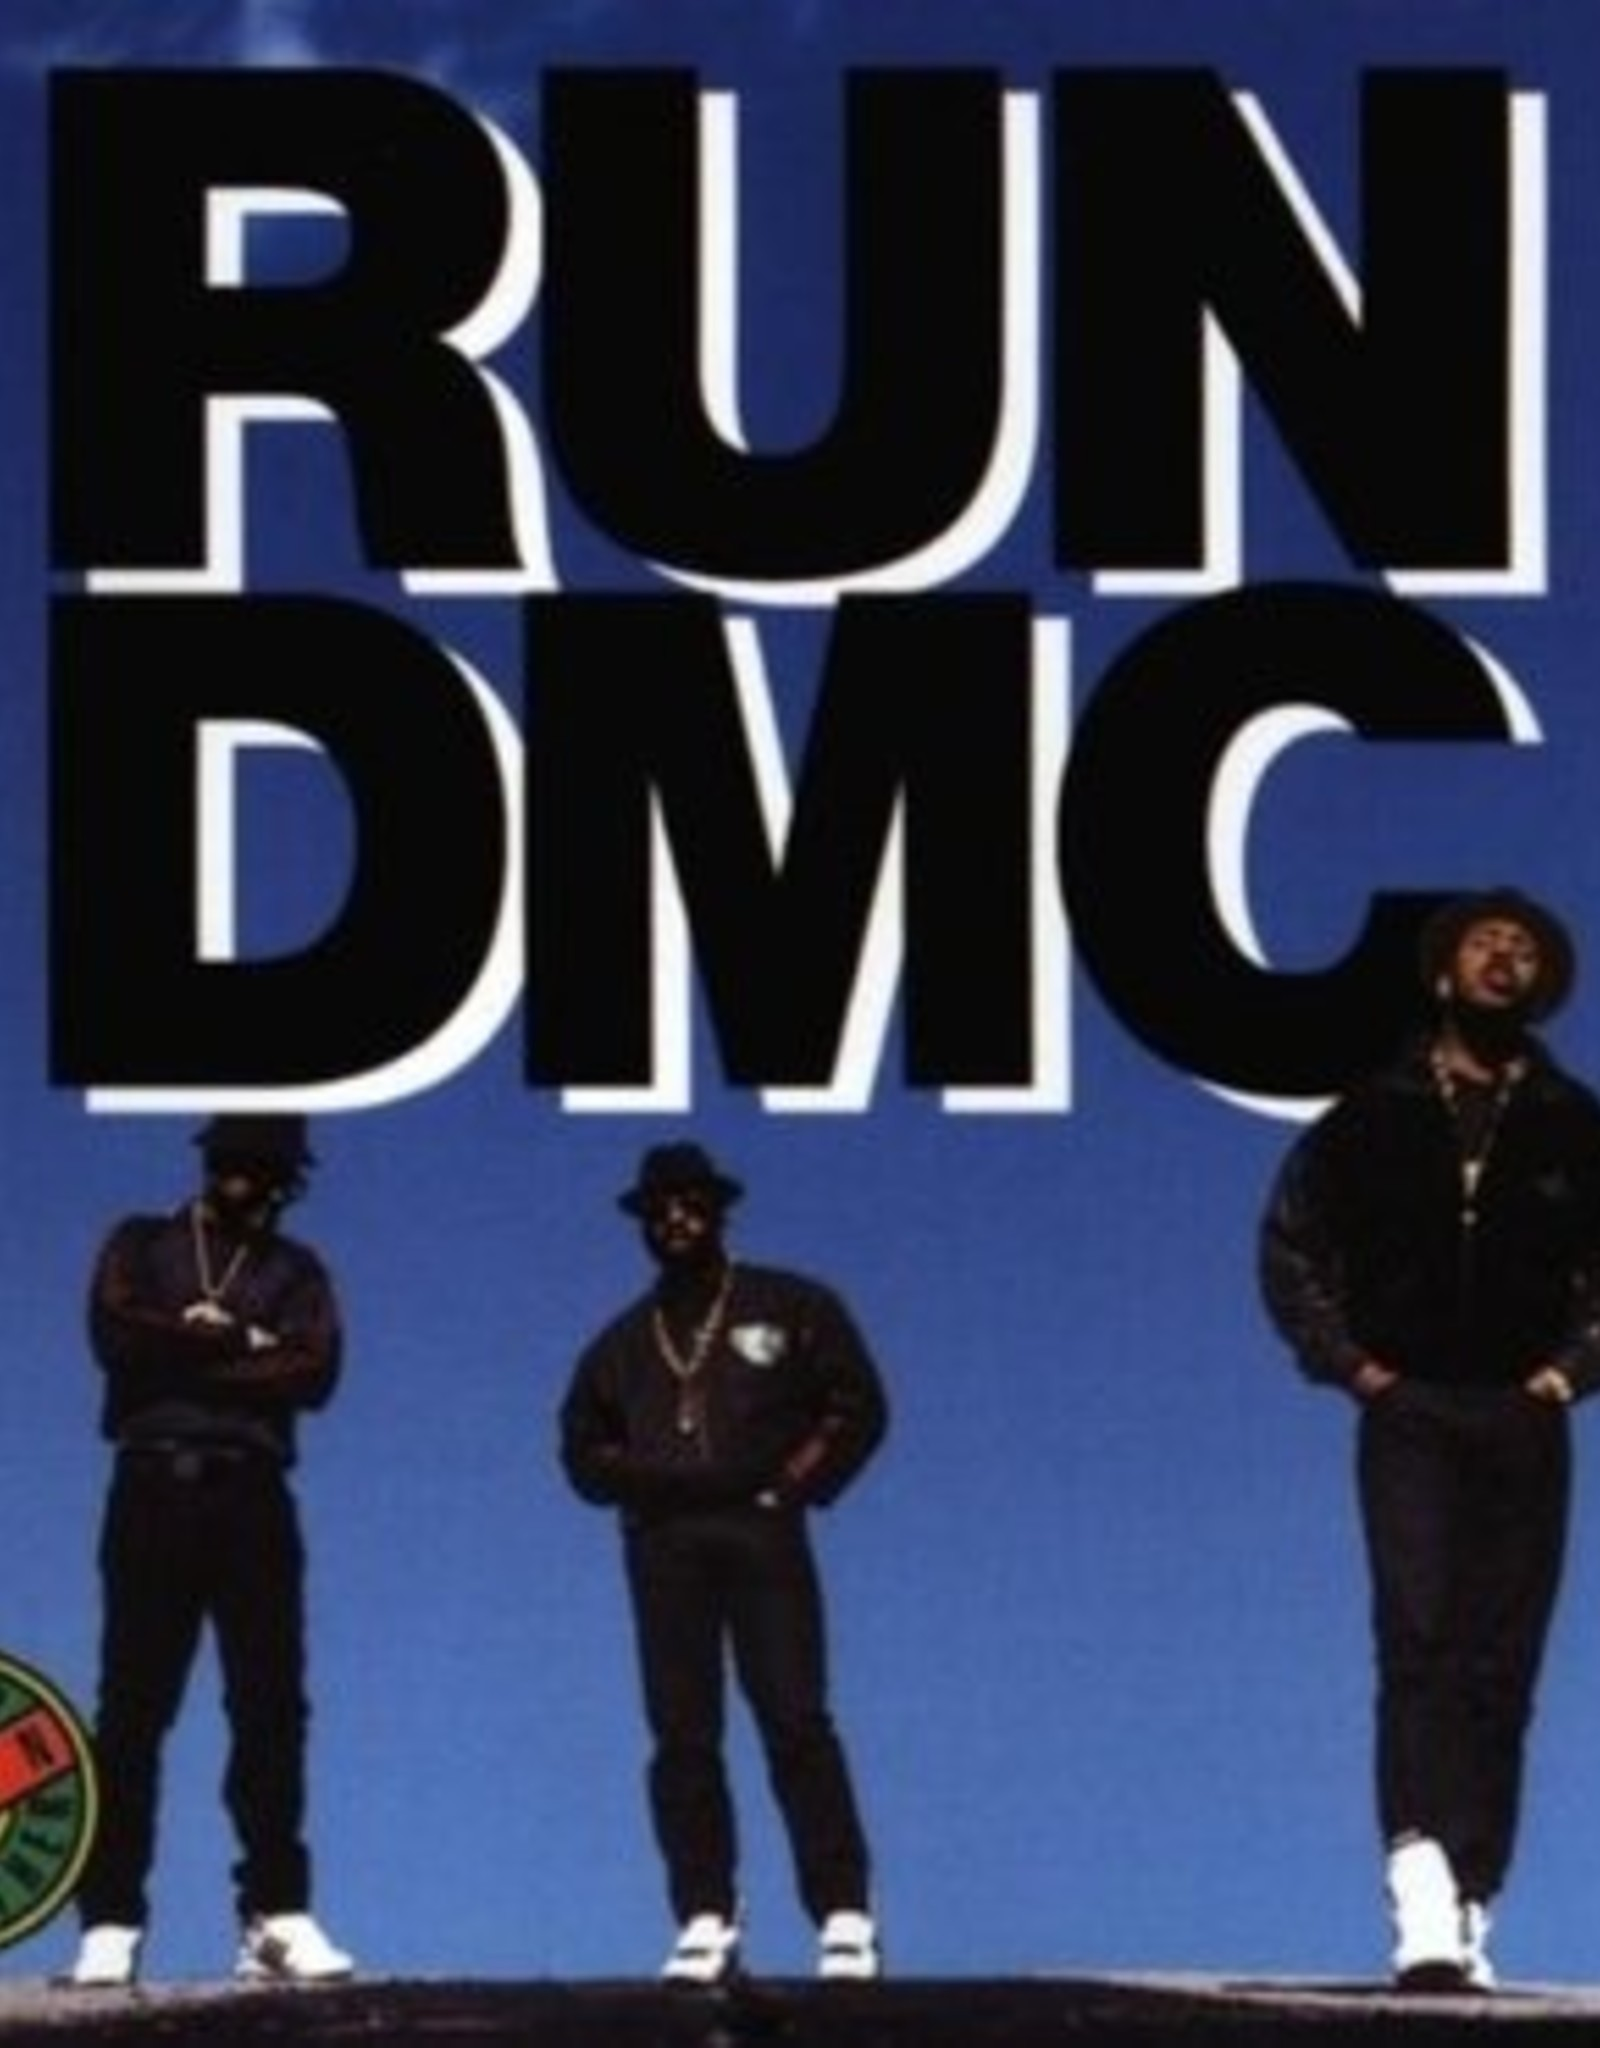 Run D.M.C. - Tougher Than Leather (Blue Vinyl)